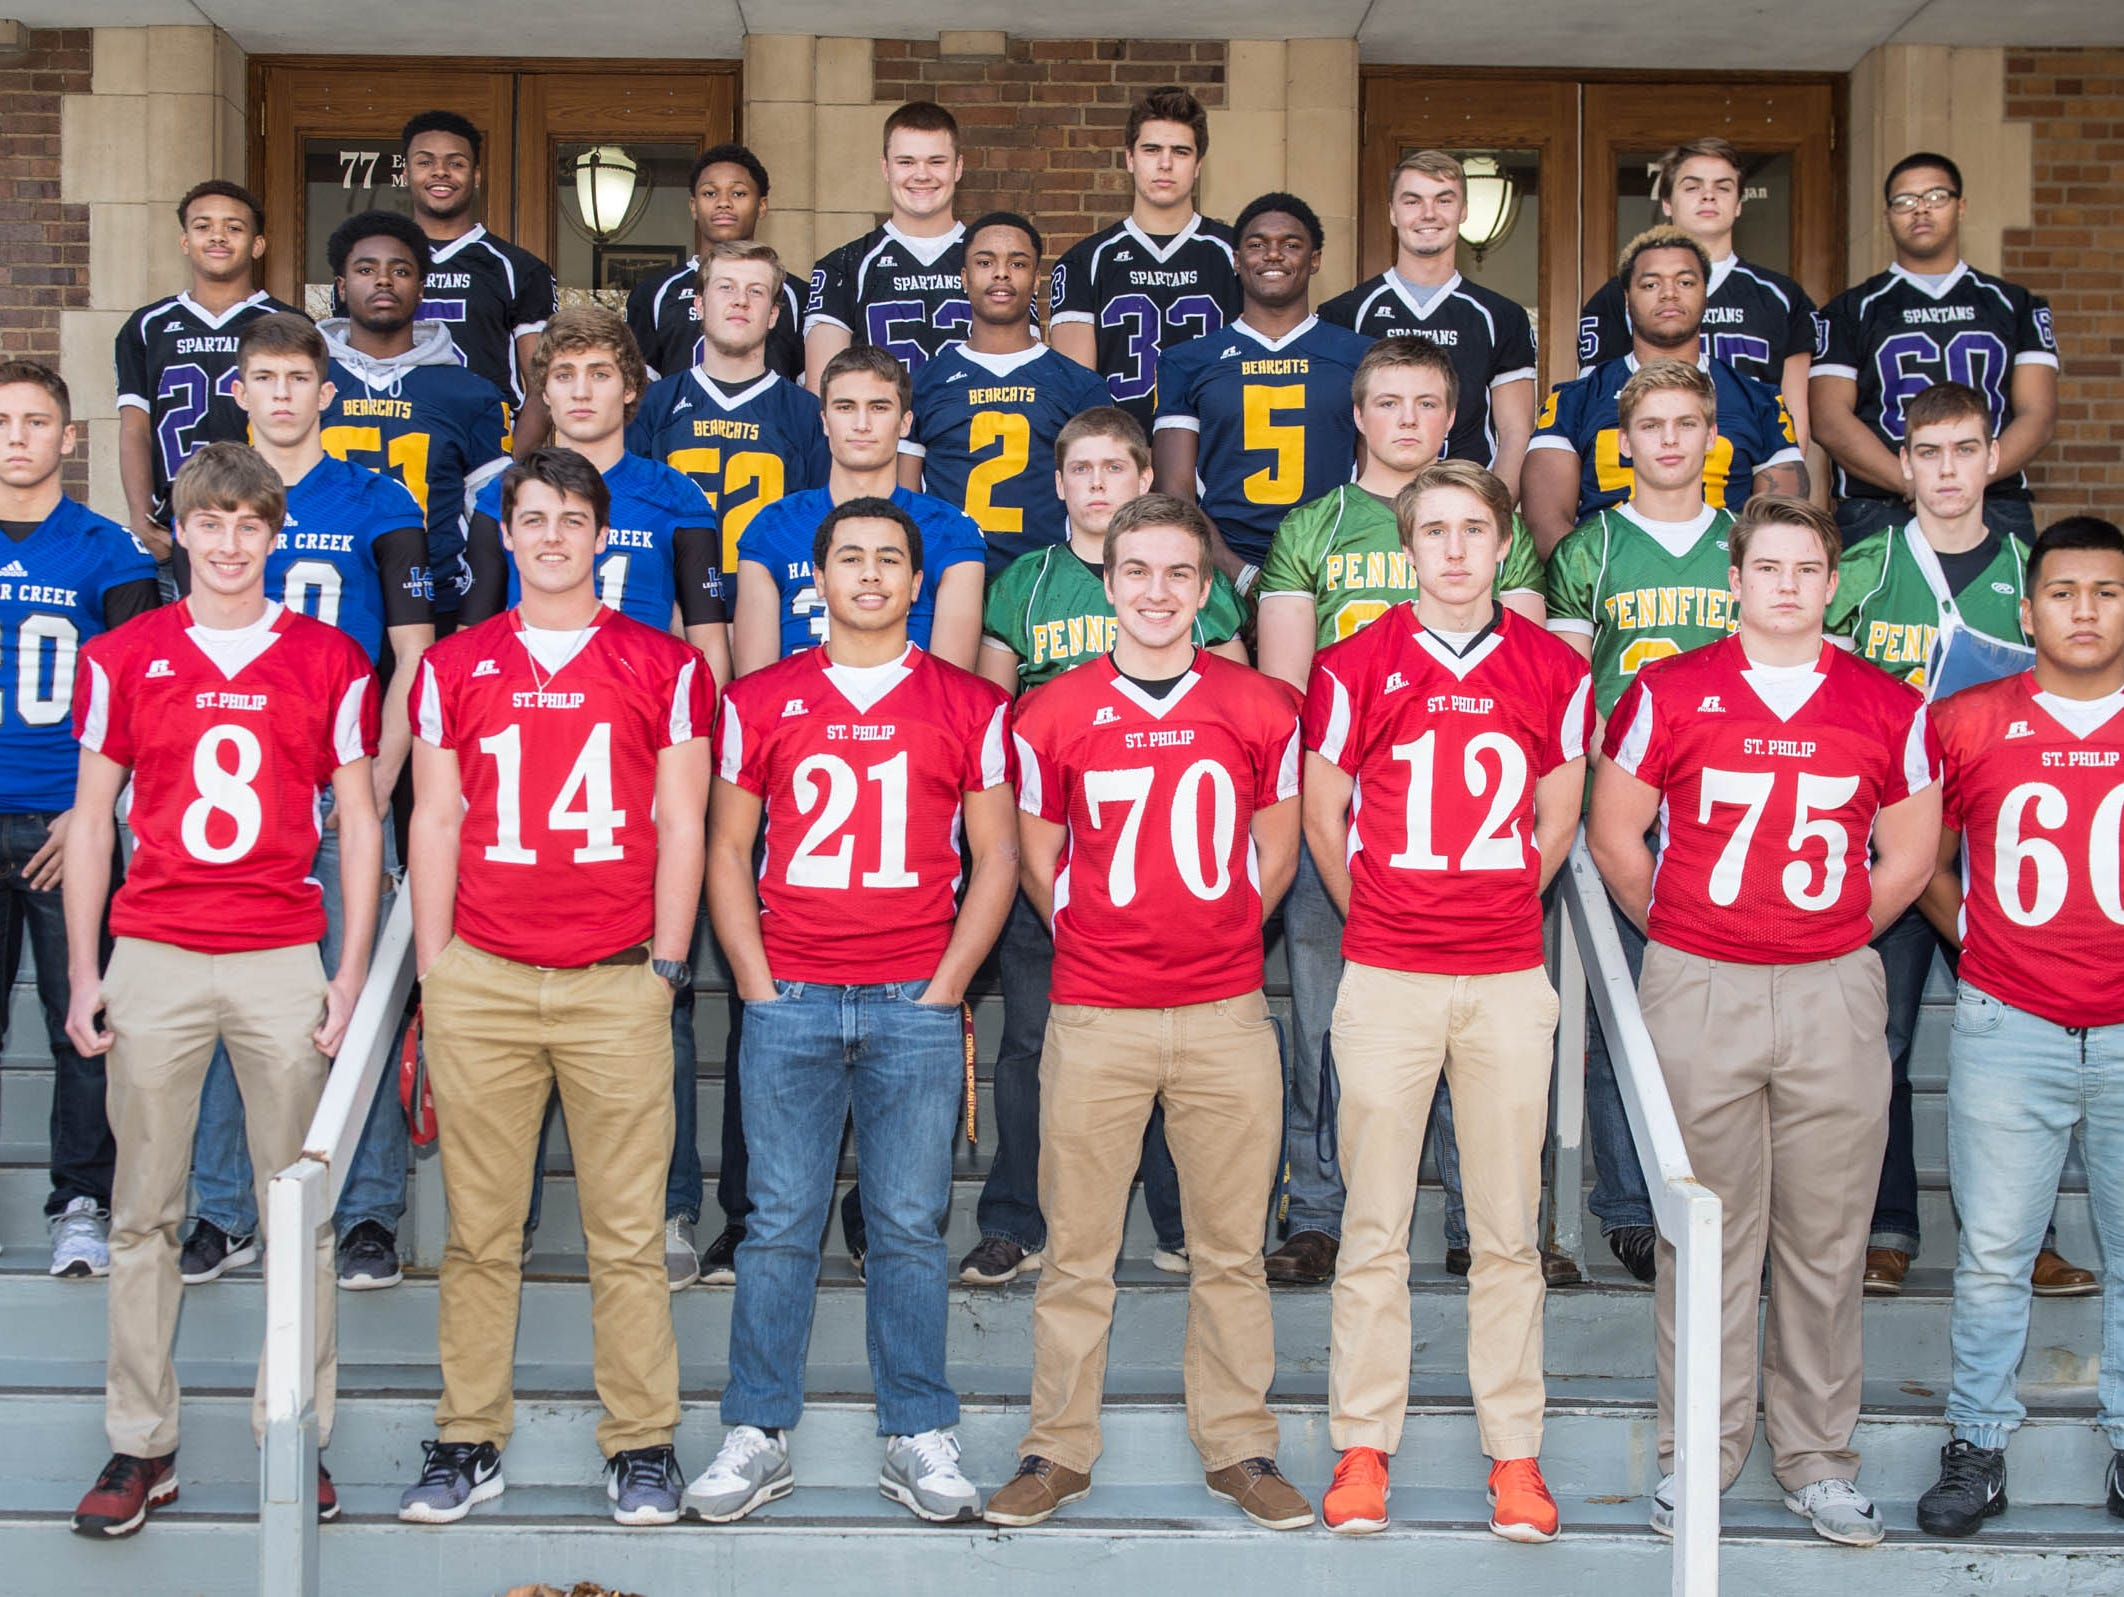 The Enquirer All-City Football Team is made up of players from the five city schools and voted on by city coaches and the Enquirer sports staff